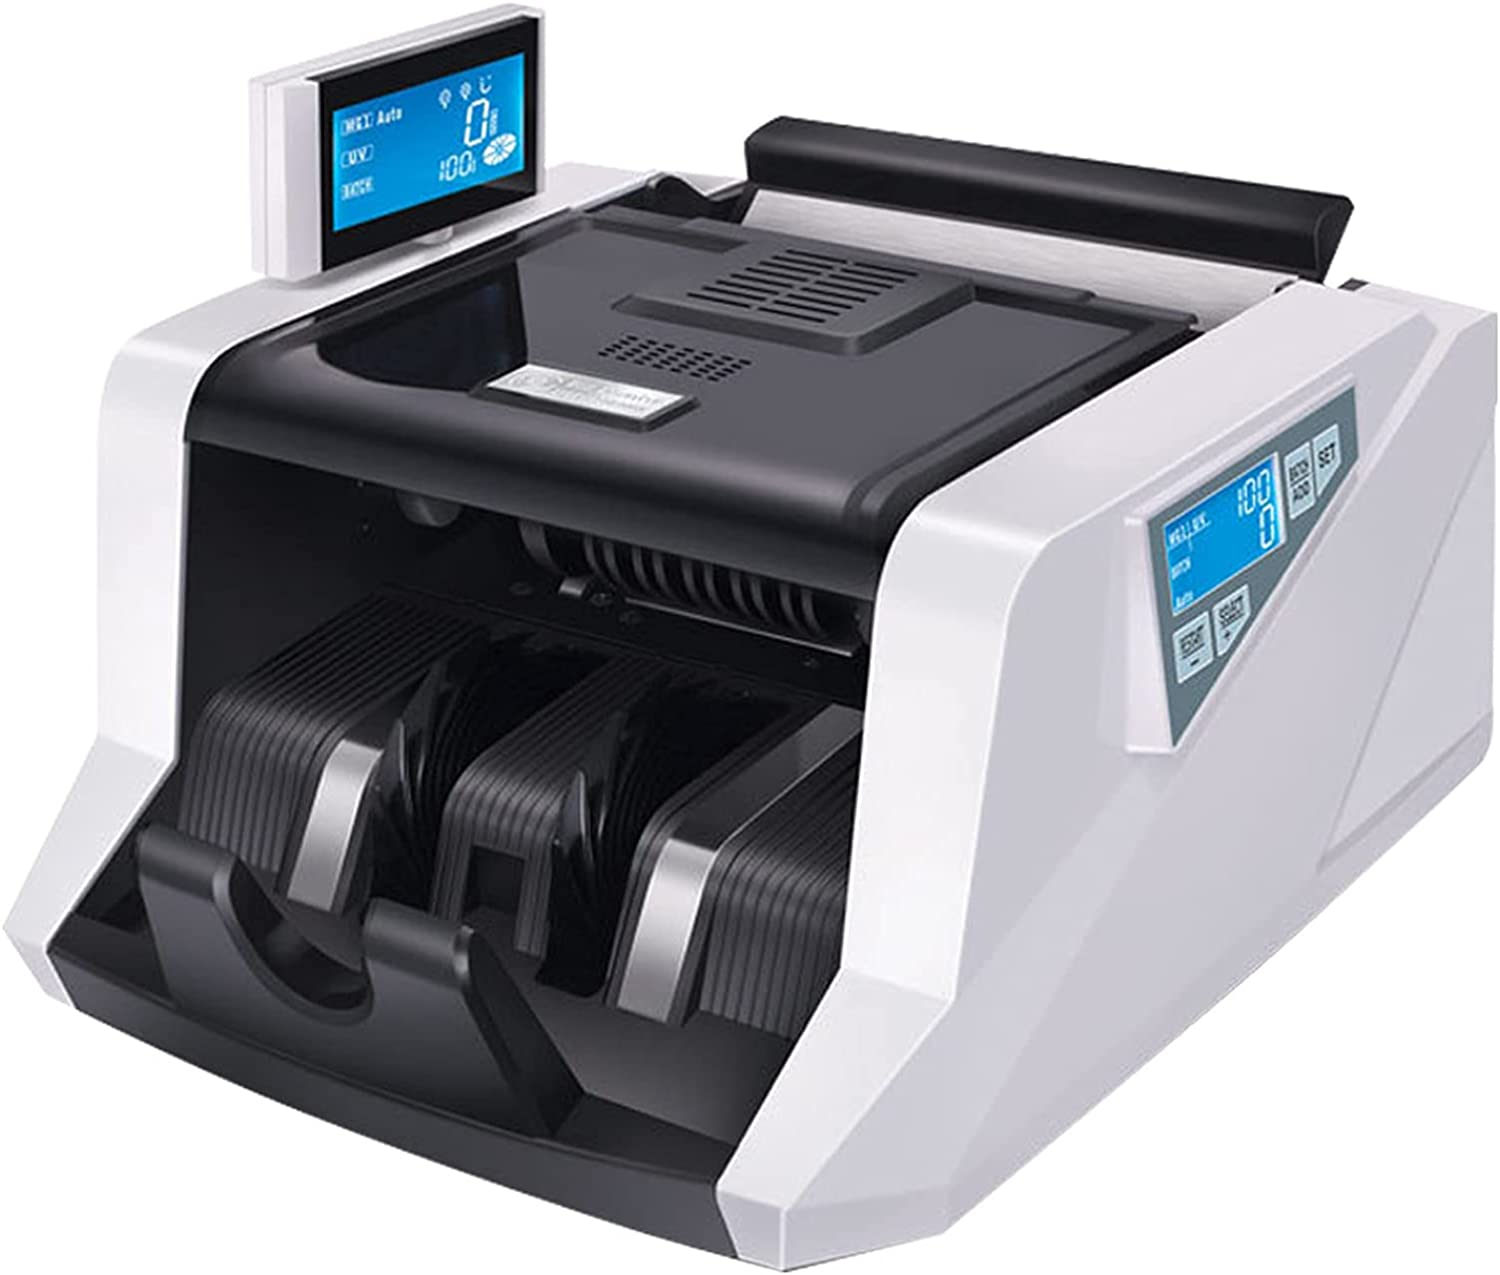 DNYSYSJ Money Max 82% OFF Counter LCD Display Safety and trust Bill Ma Cash Counting